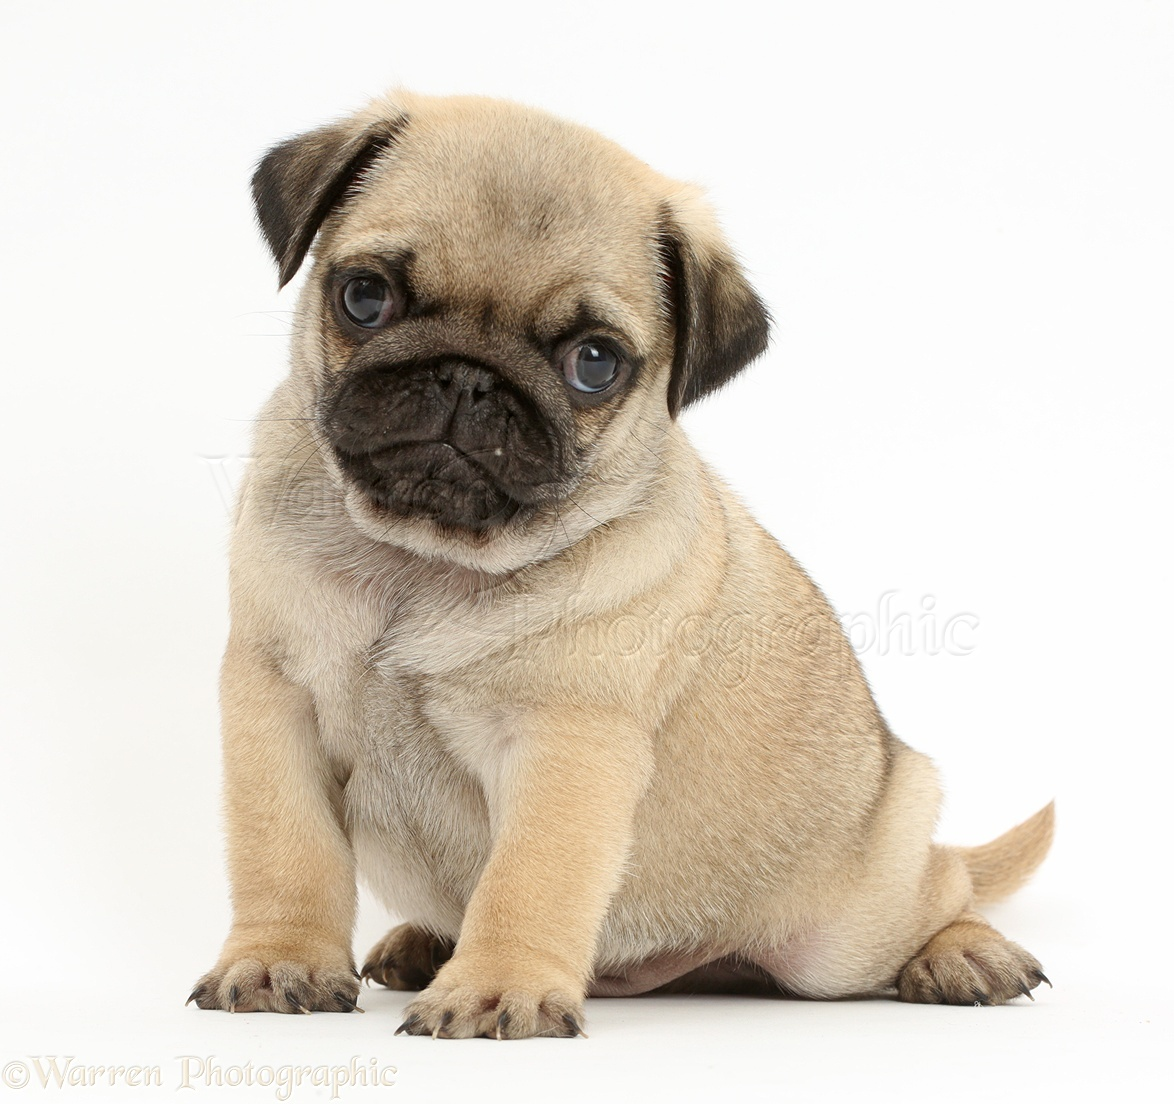 how to train a pug puppy to sit